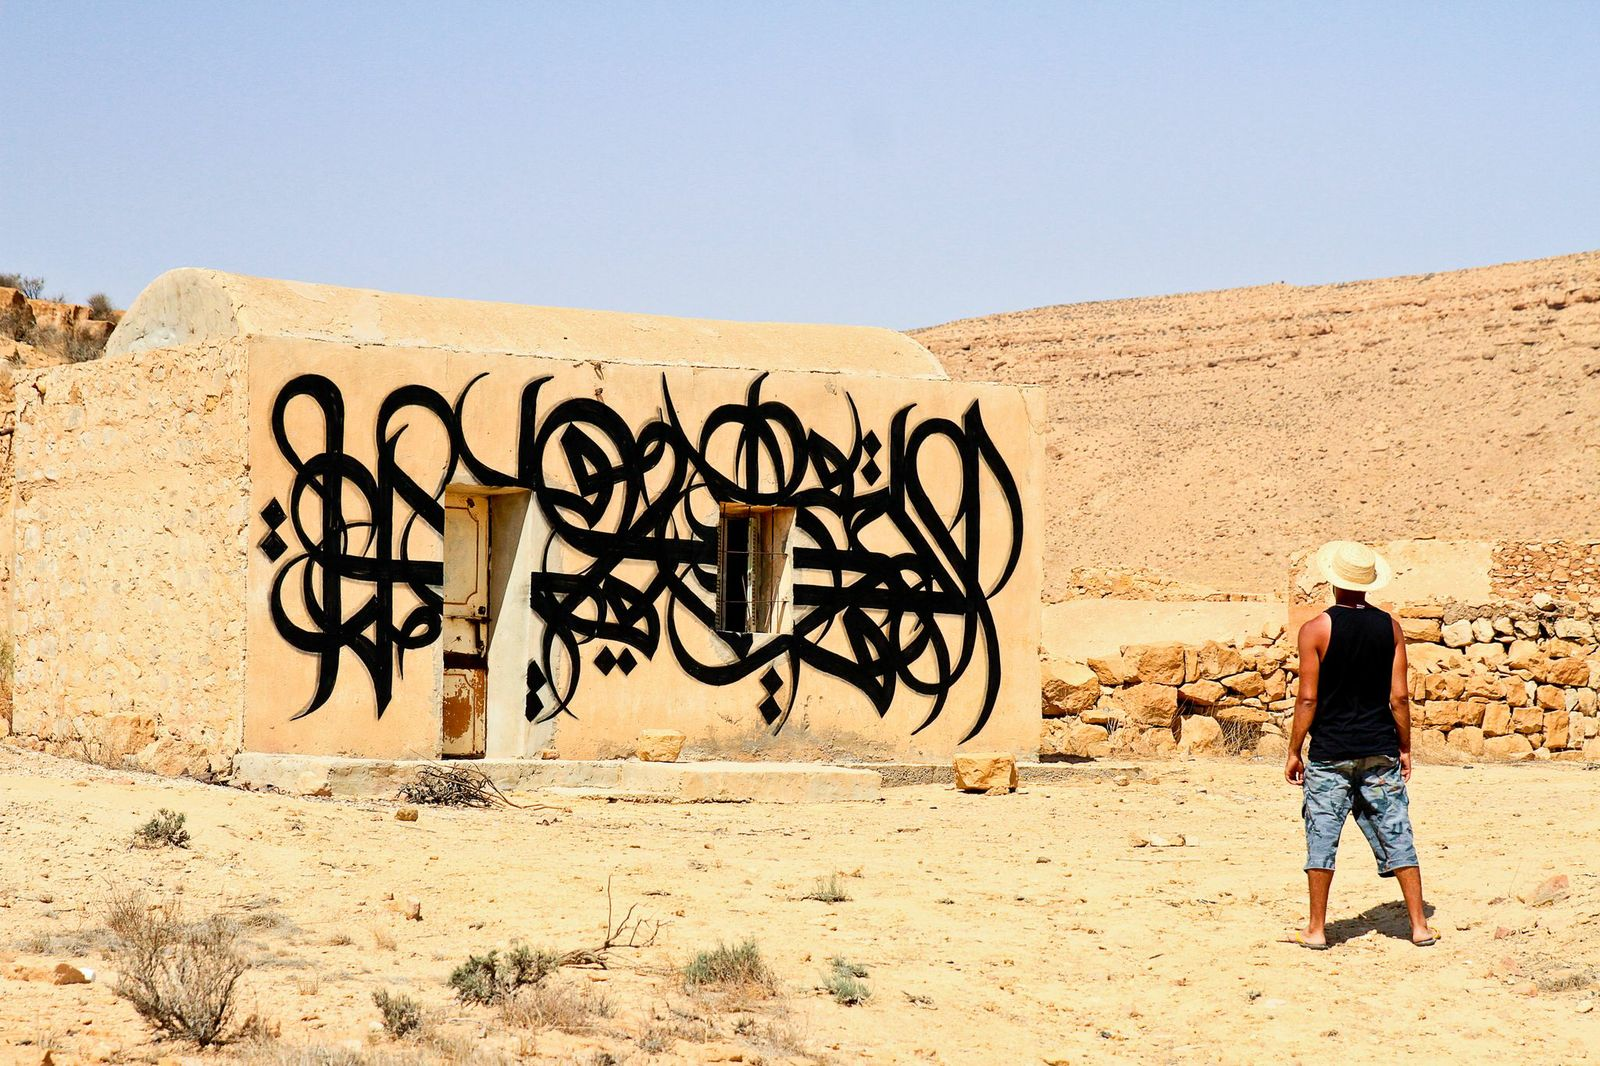 """eL Seed, 'The Original Source', Ksar Hadada, Tunisia, from the """"Lost Walls"""" project, 2013. Photograph by Ouahid Berrehouma."""